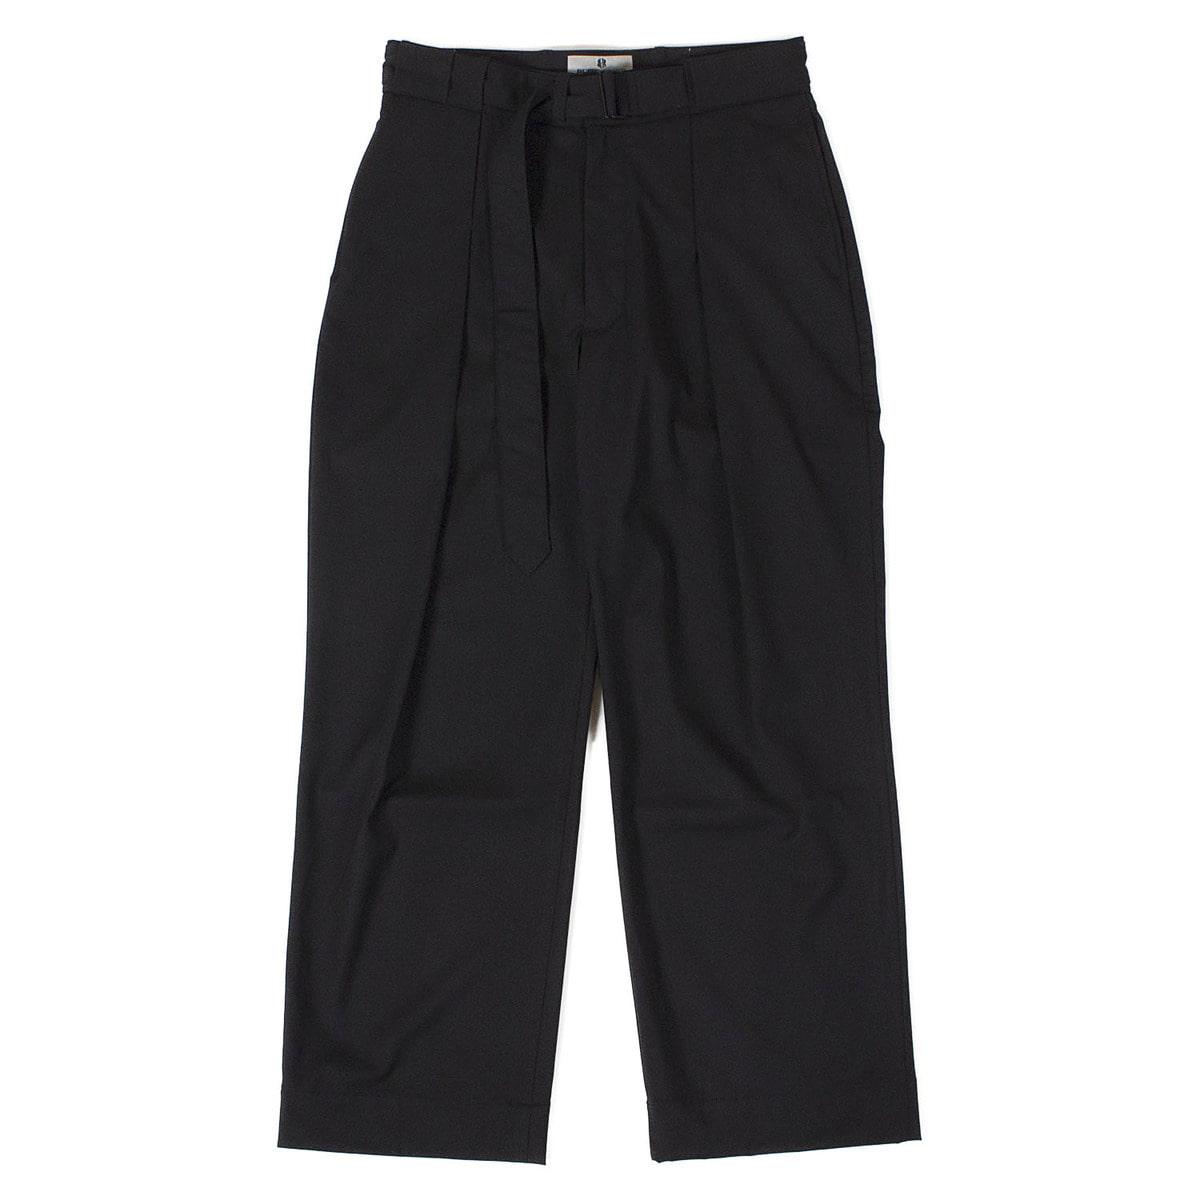 Belted Wide Pants (Black)